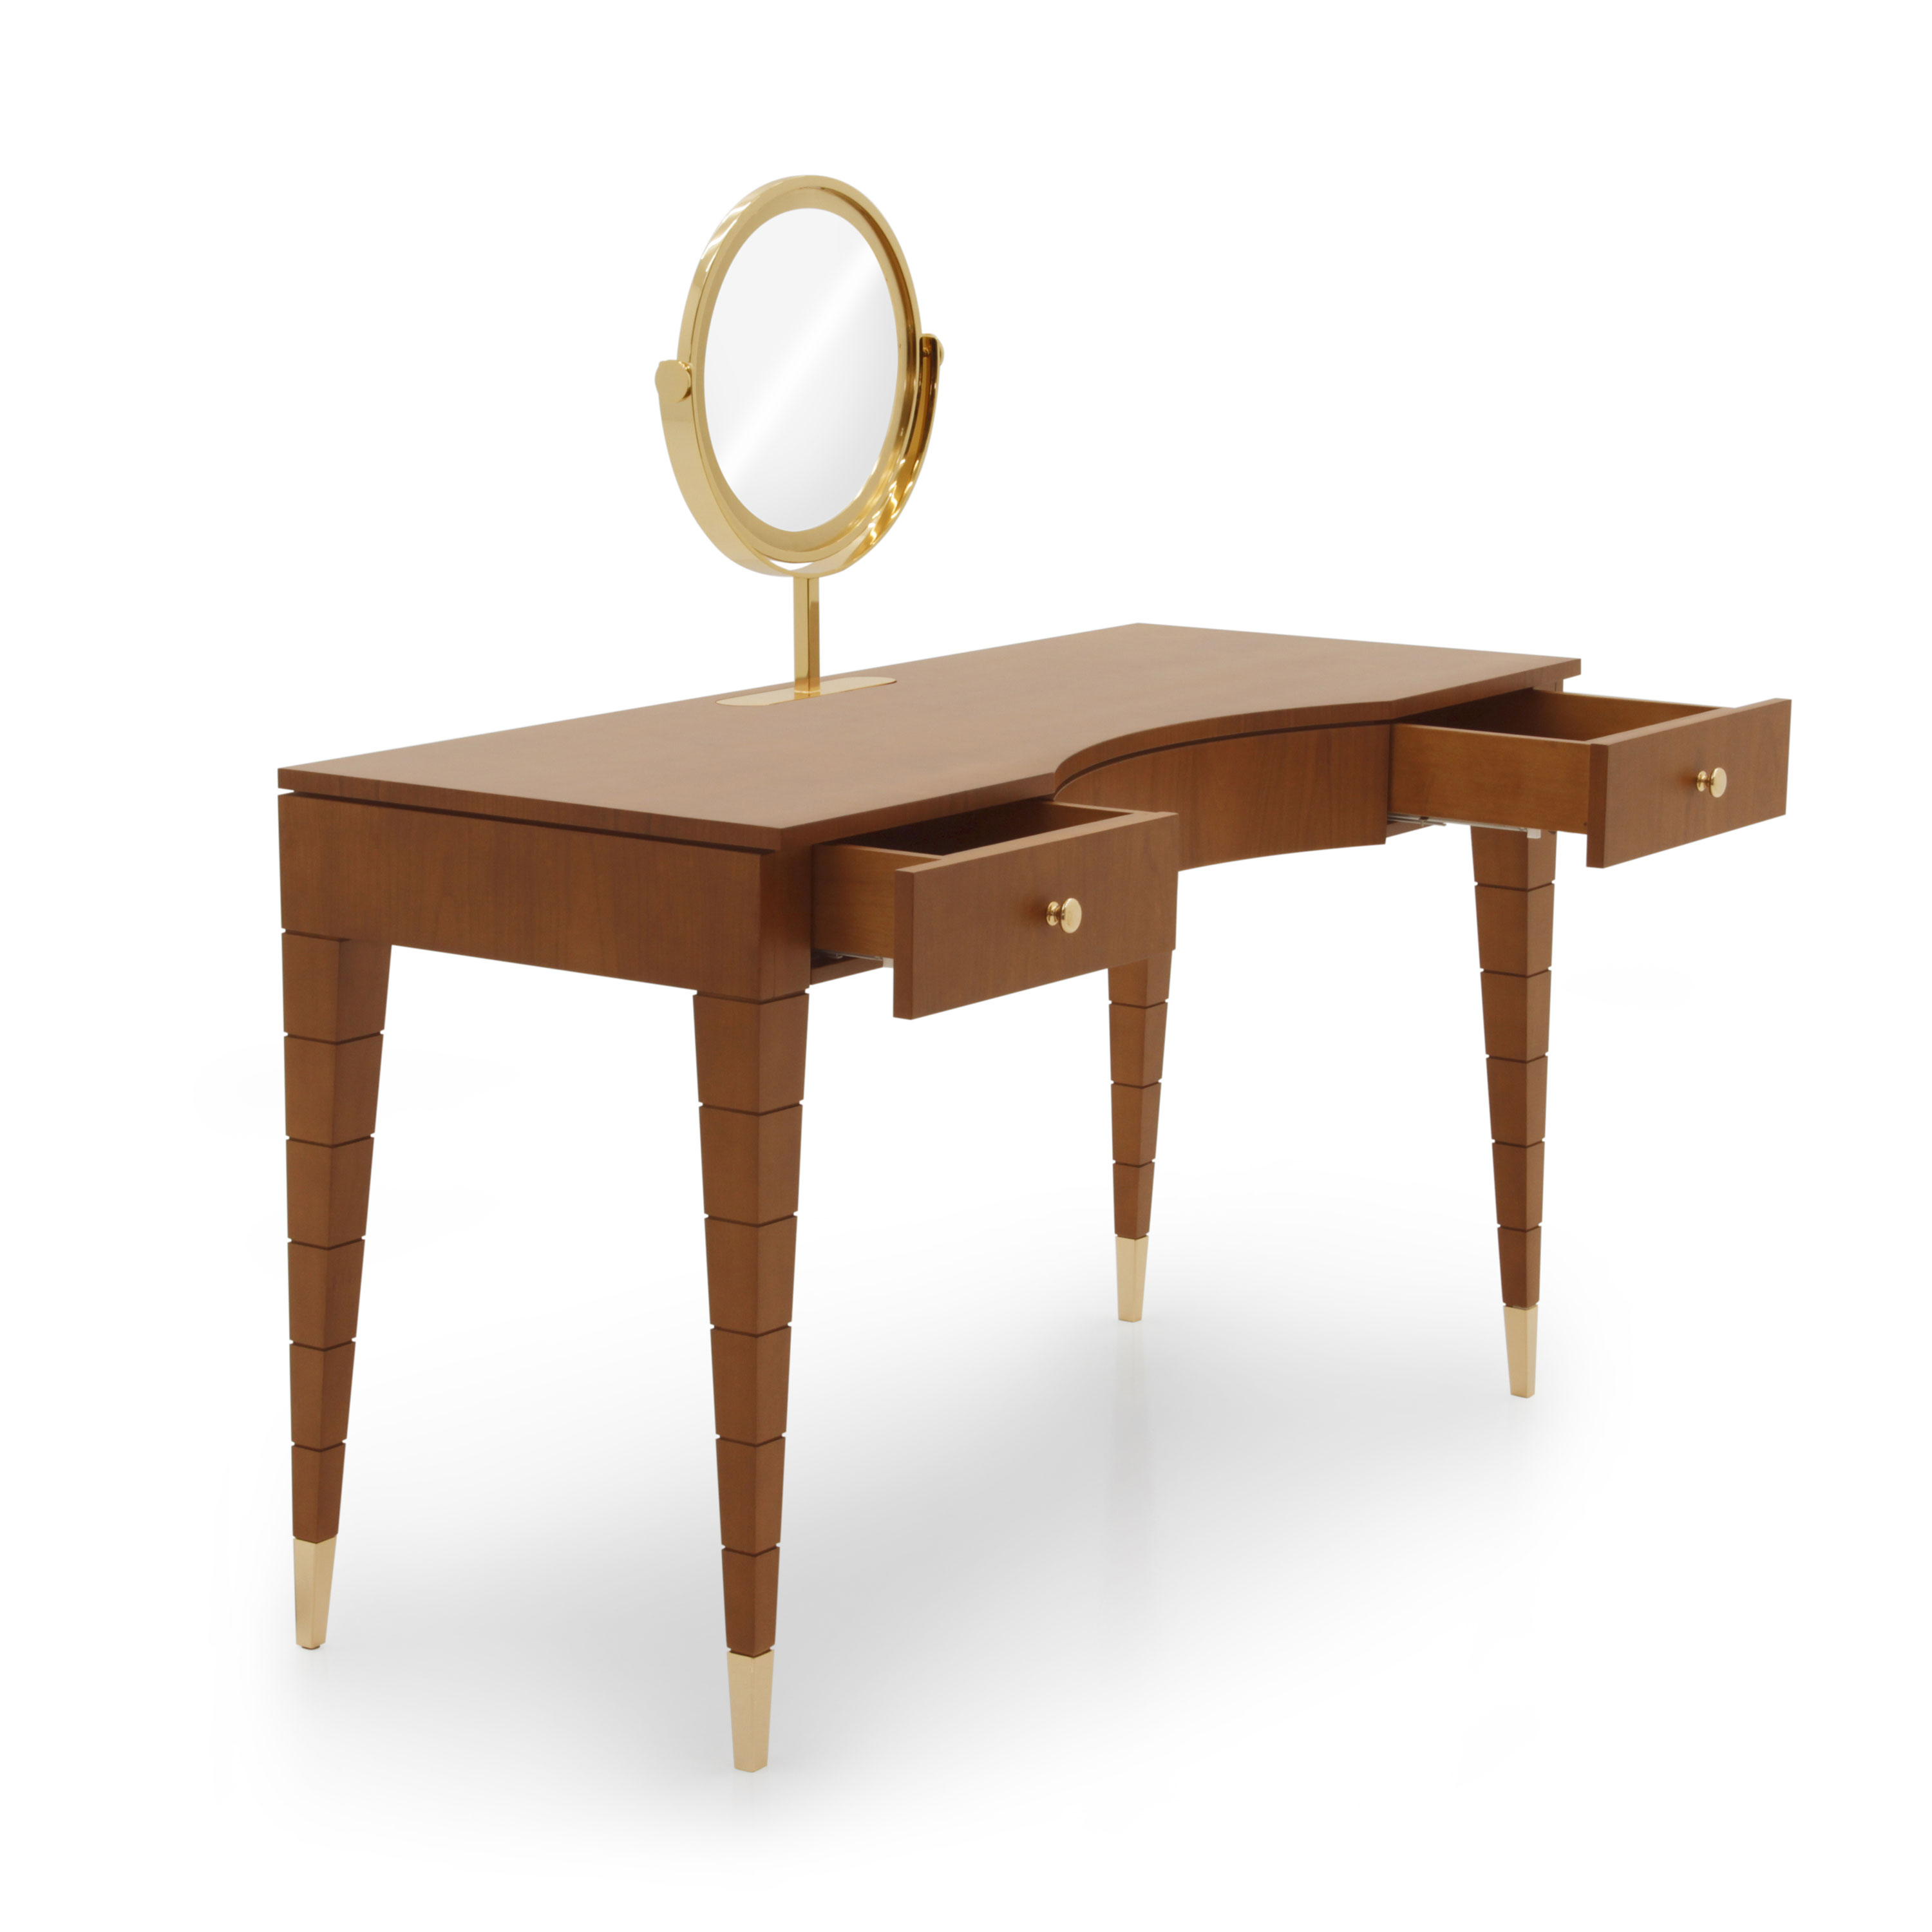 Contemporary Style Writing Desk Made of Wood Look 948 Sevensedie